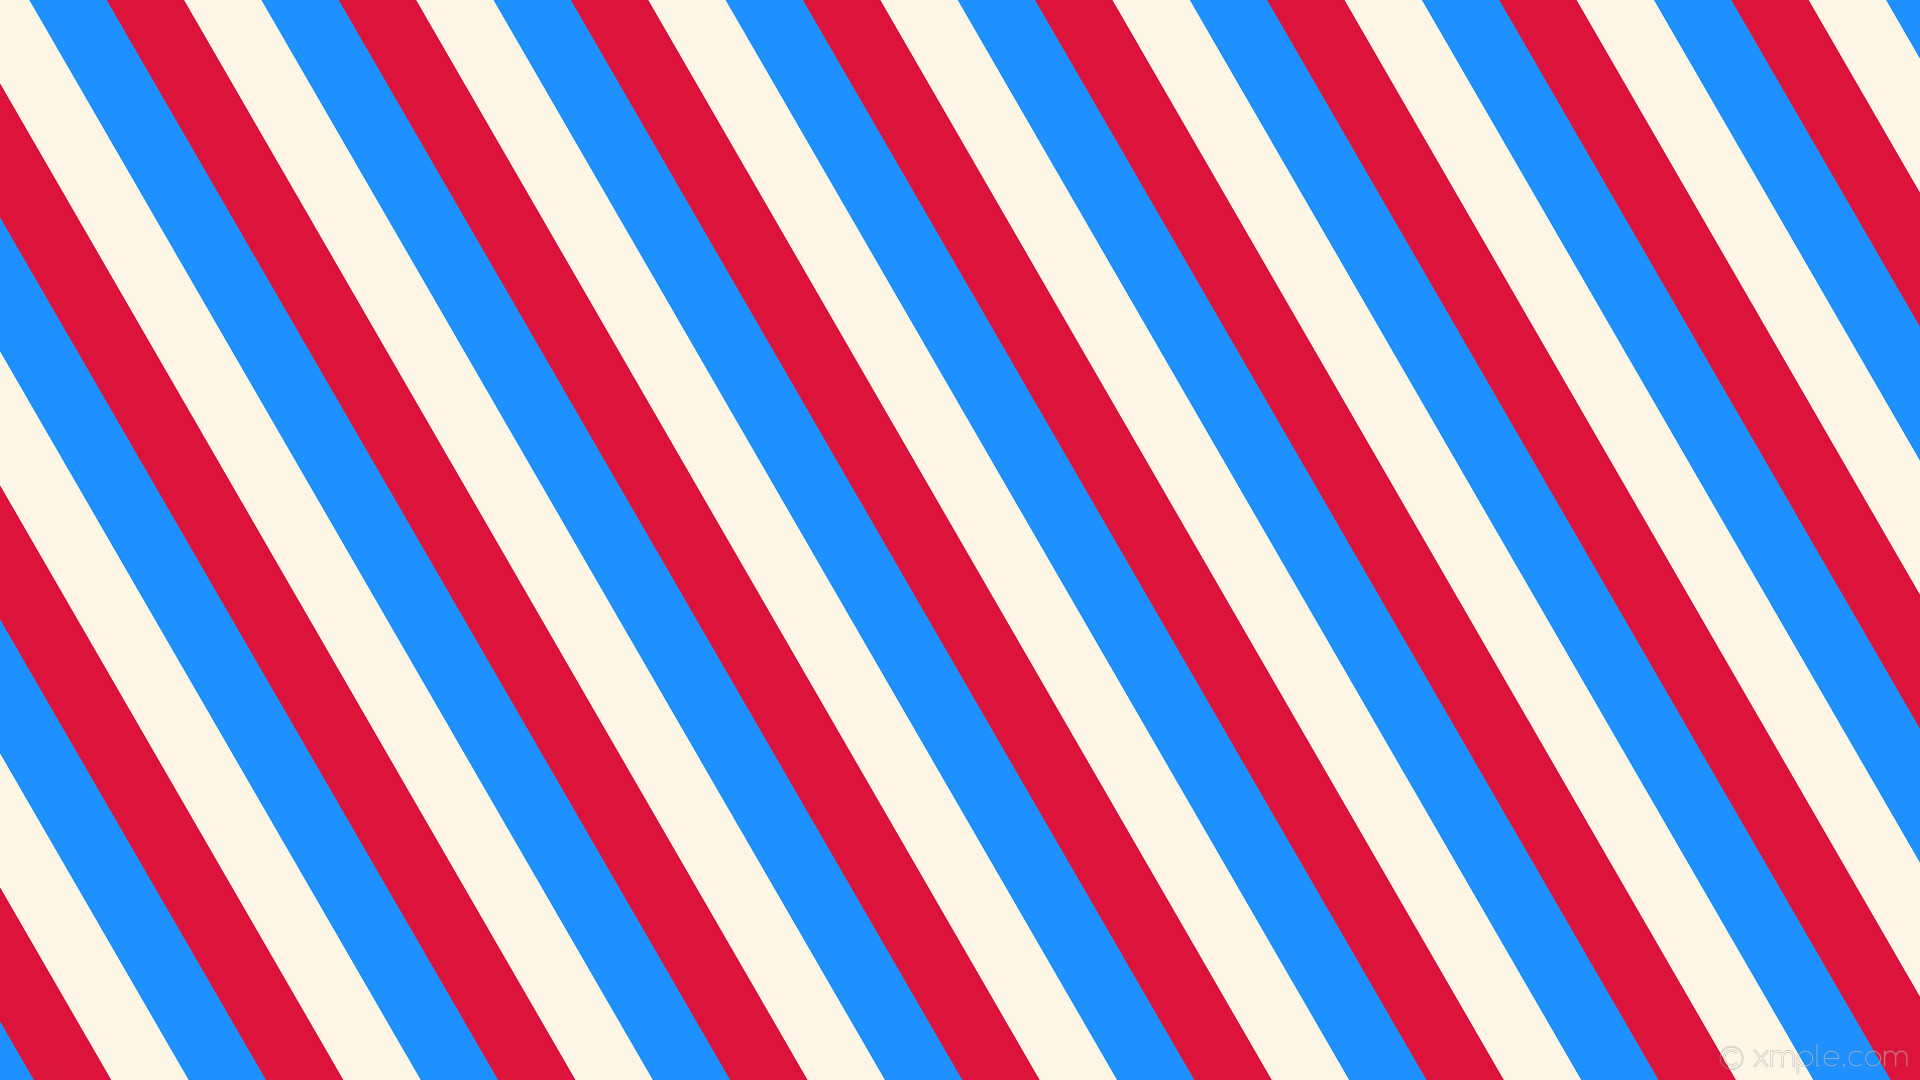 1920x1080 Red White And Blue Striped Wallpaper